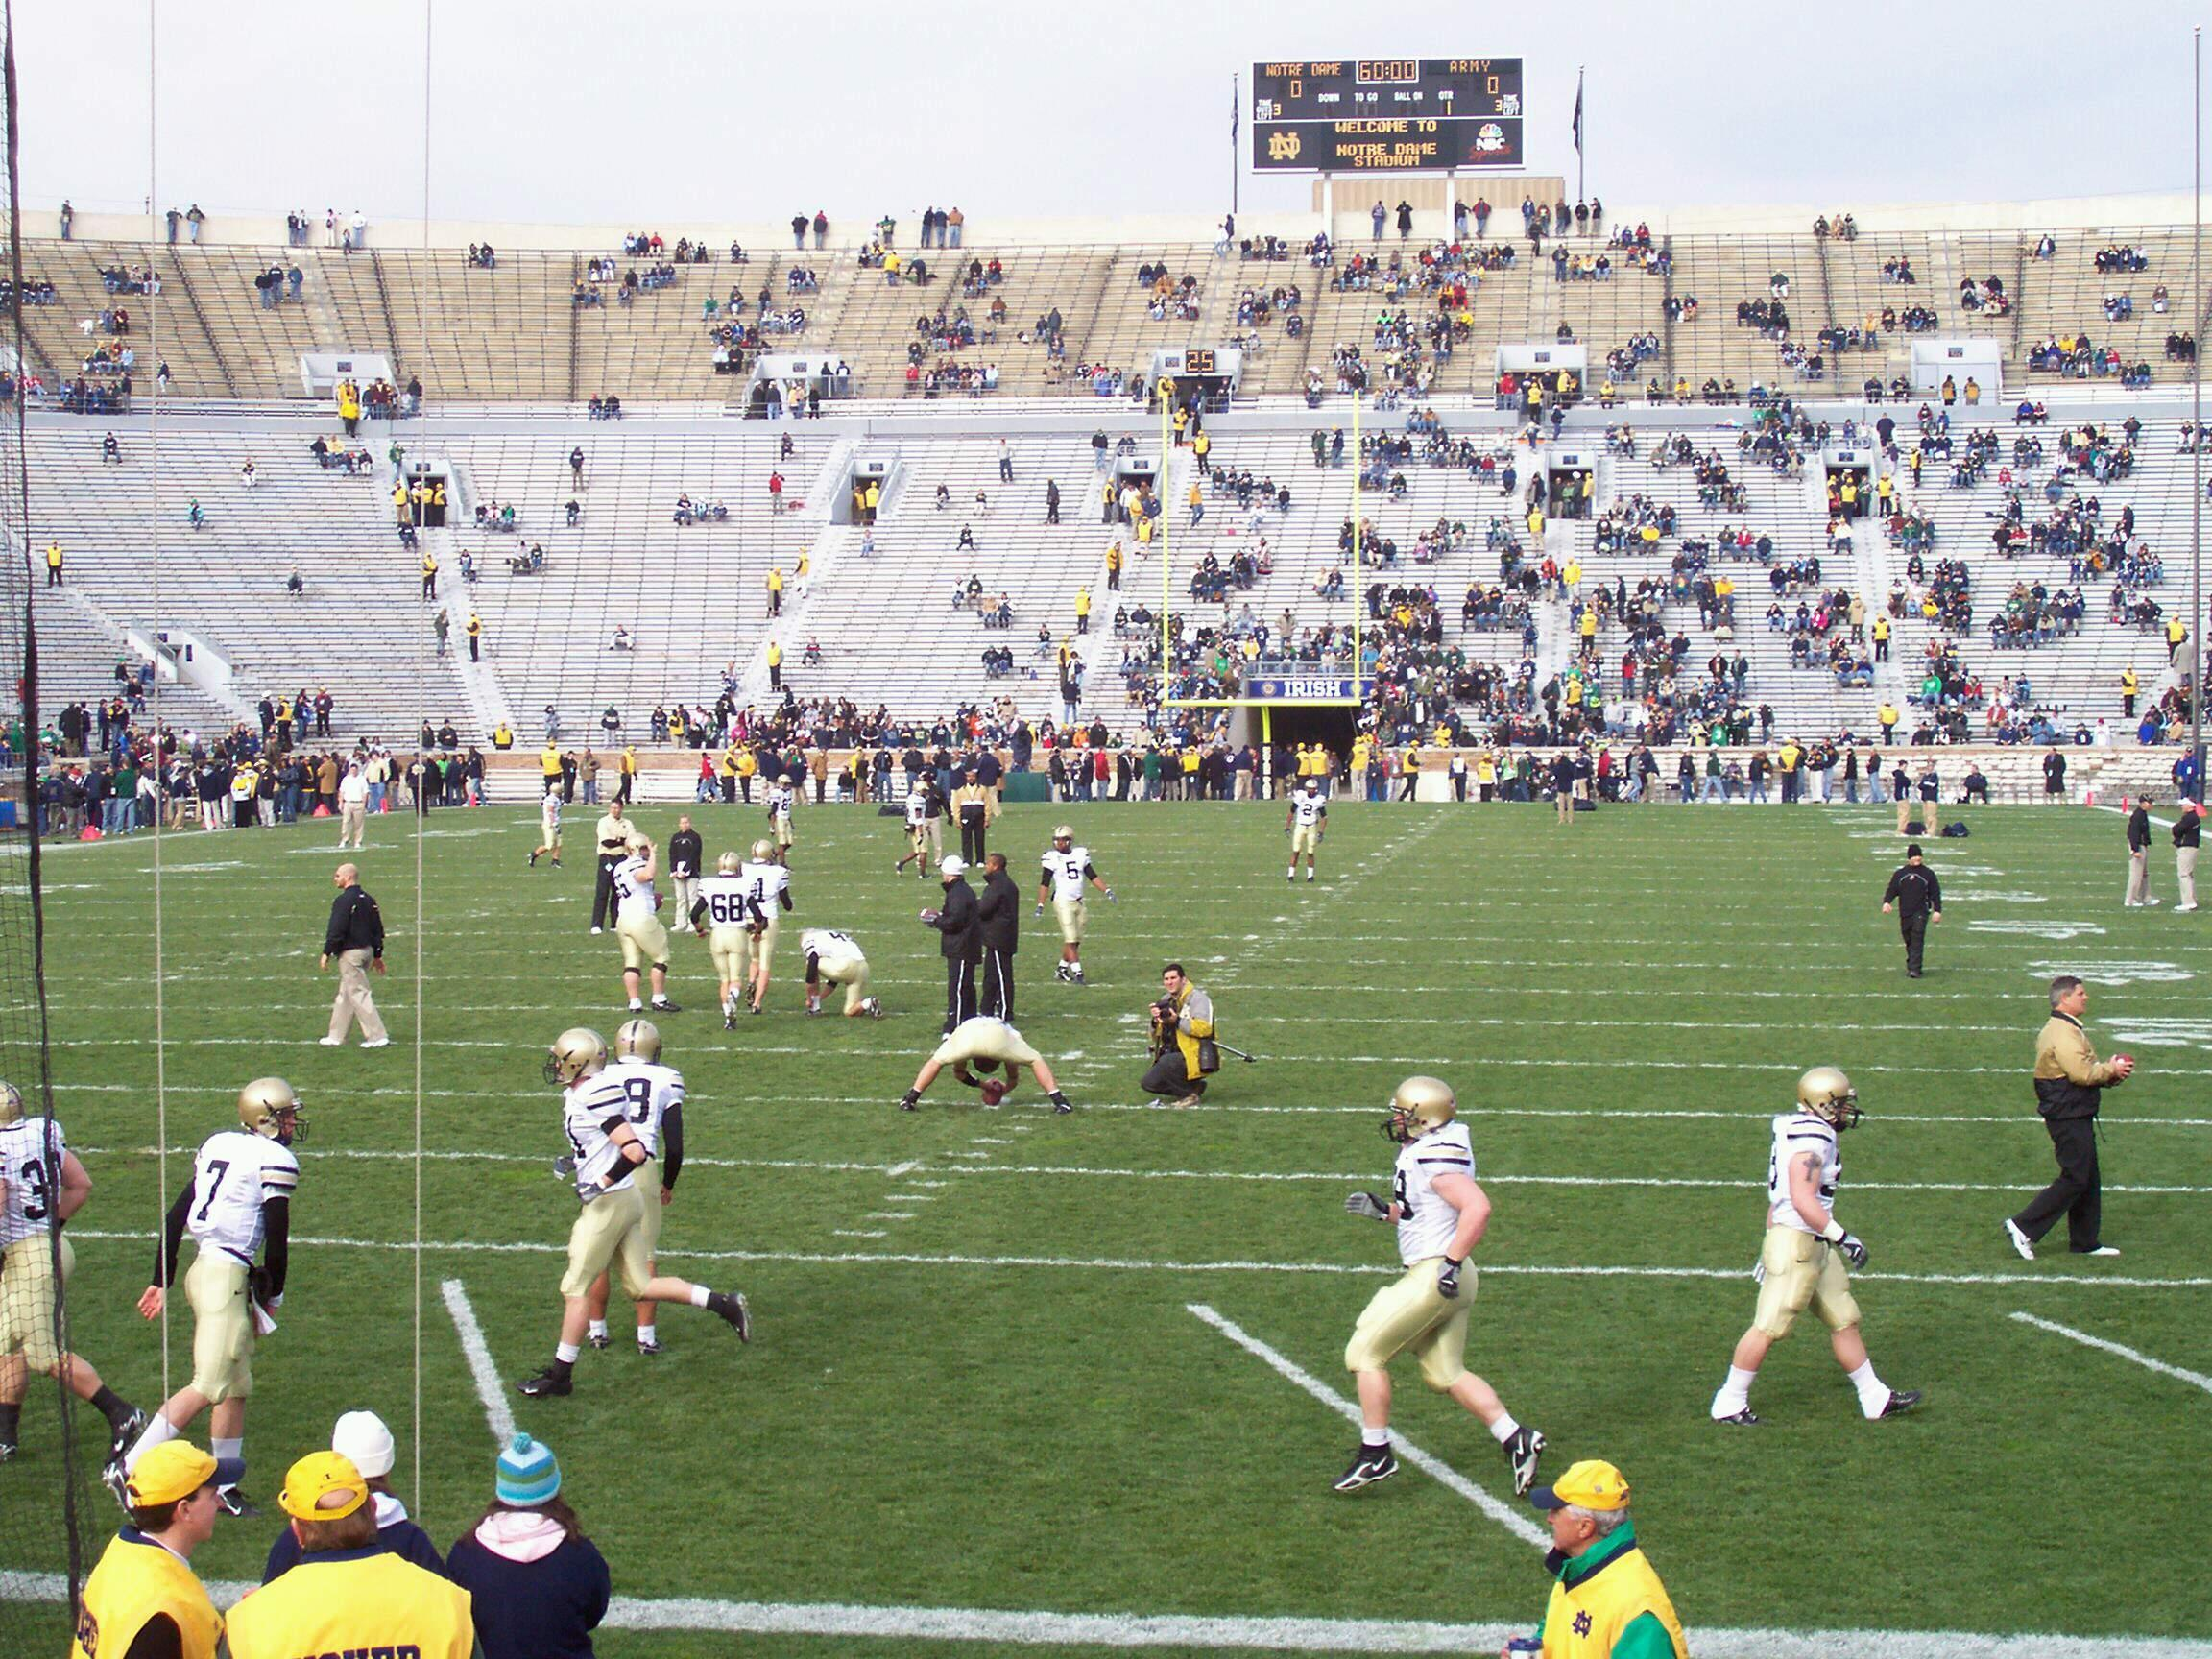 Notre Dame Stadium Section 18 Row 13 Seat 5